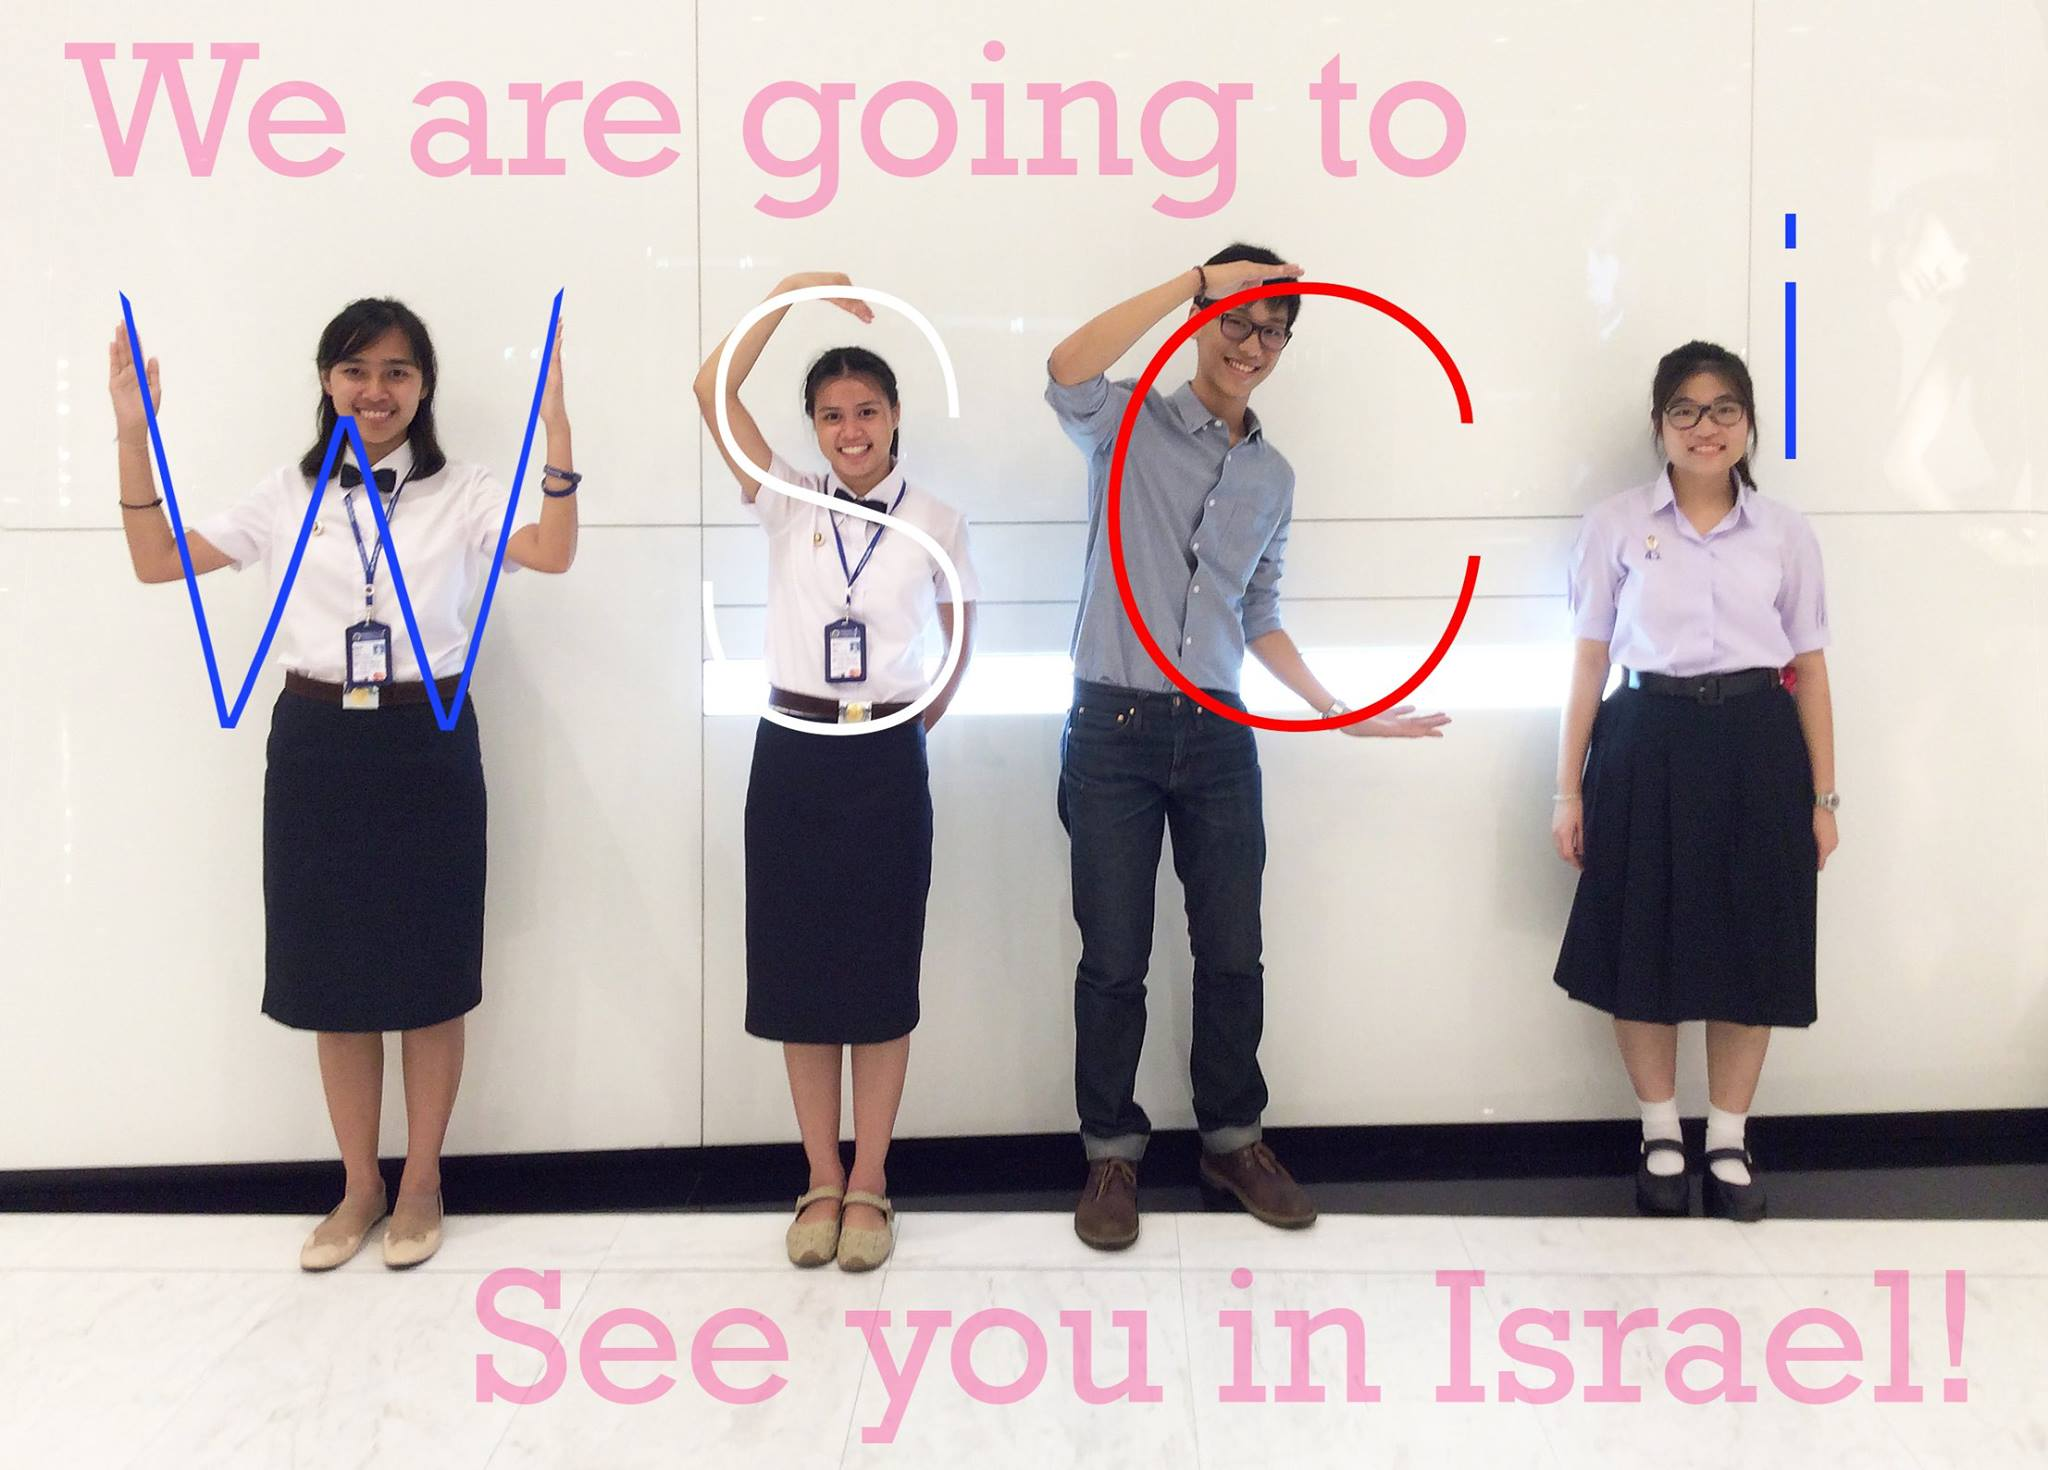 Thai delegation announces its upcoming participation at WSCI. Photo: WSCI Facebook